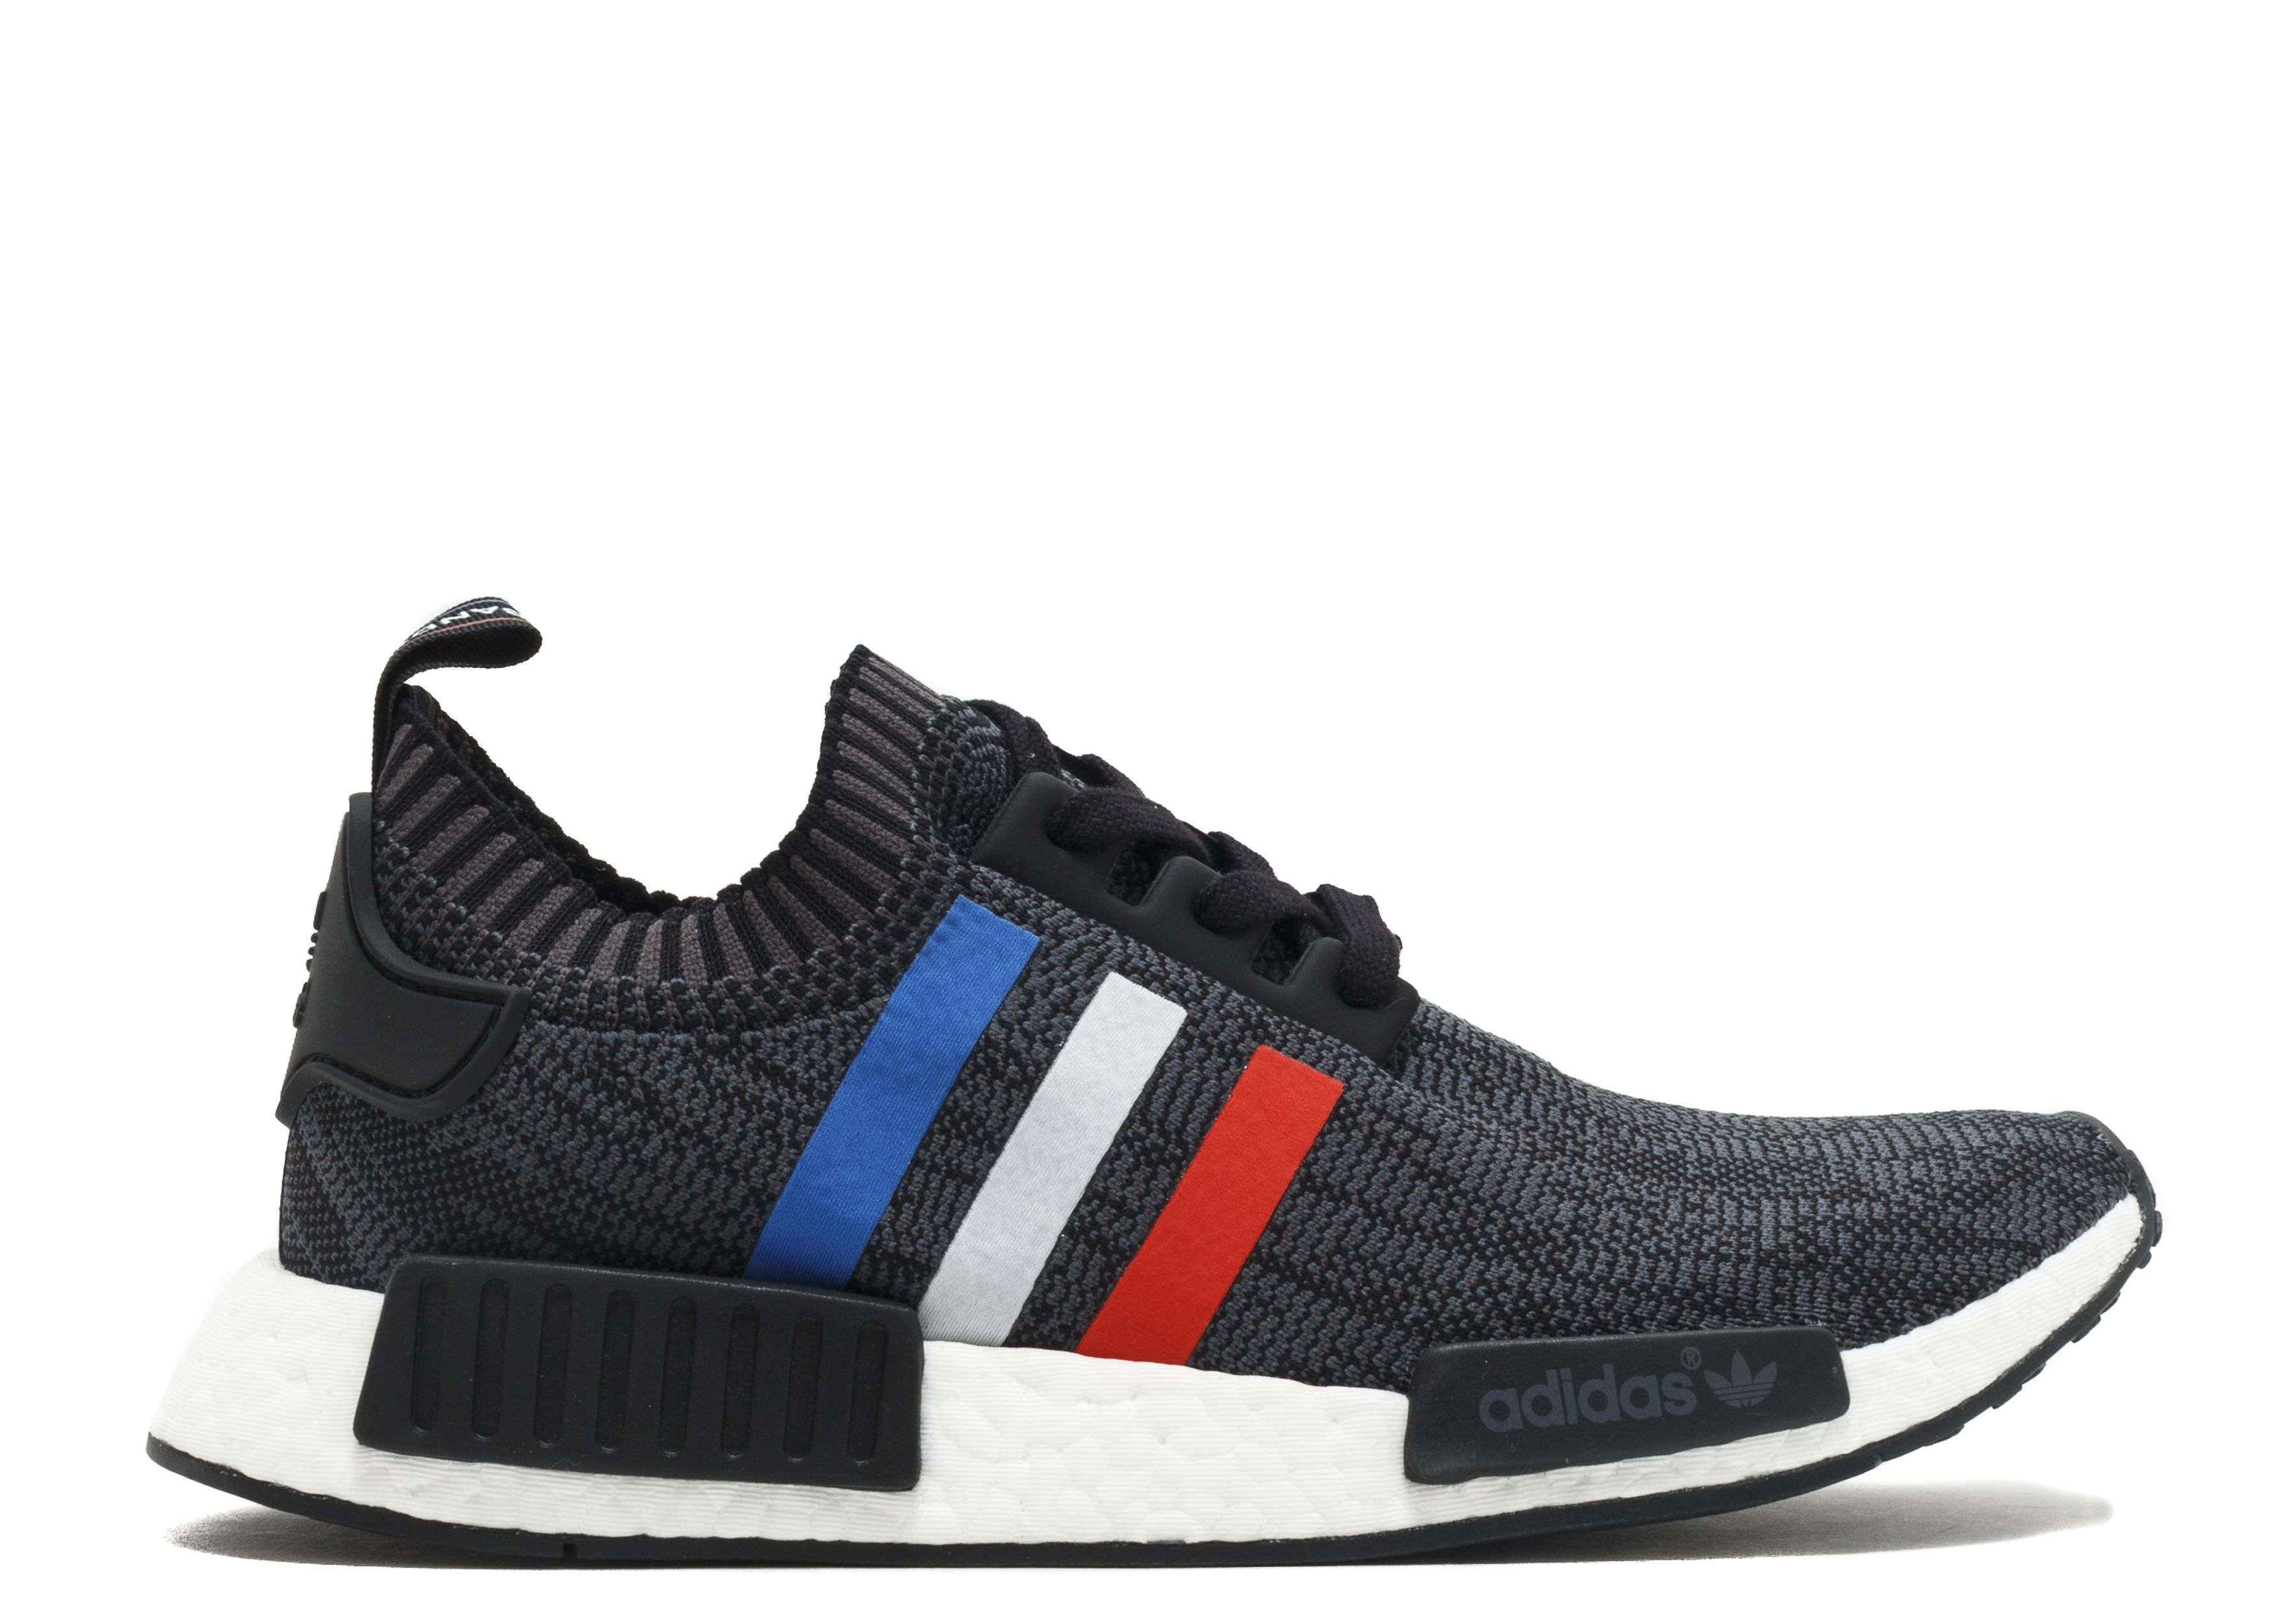 Adidas Nmd R1 Pk Tri Color With Images Sneakers Men